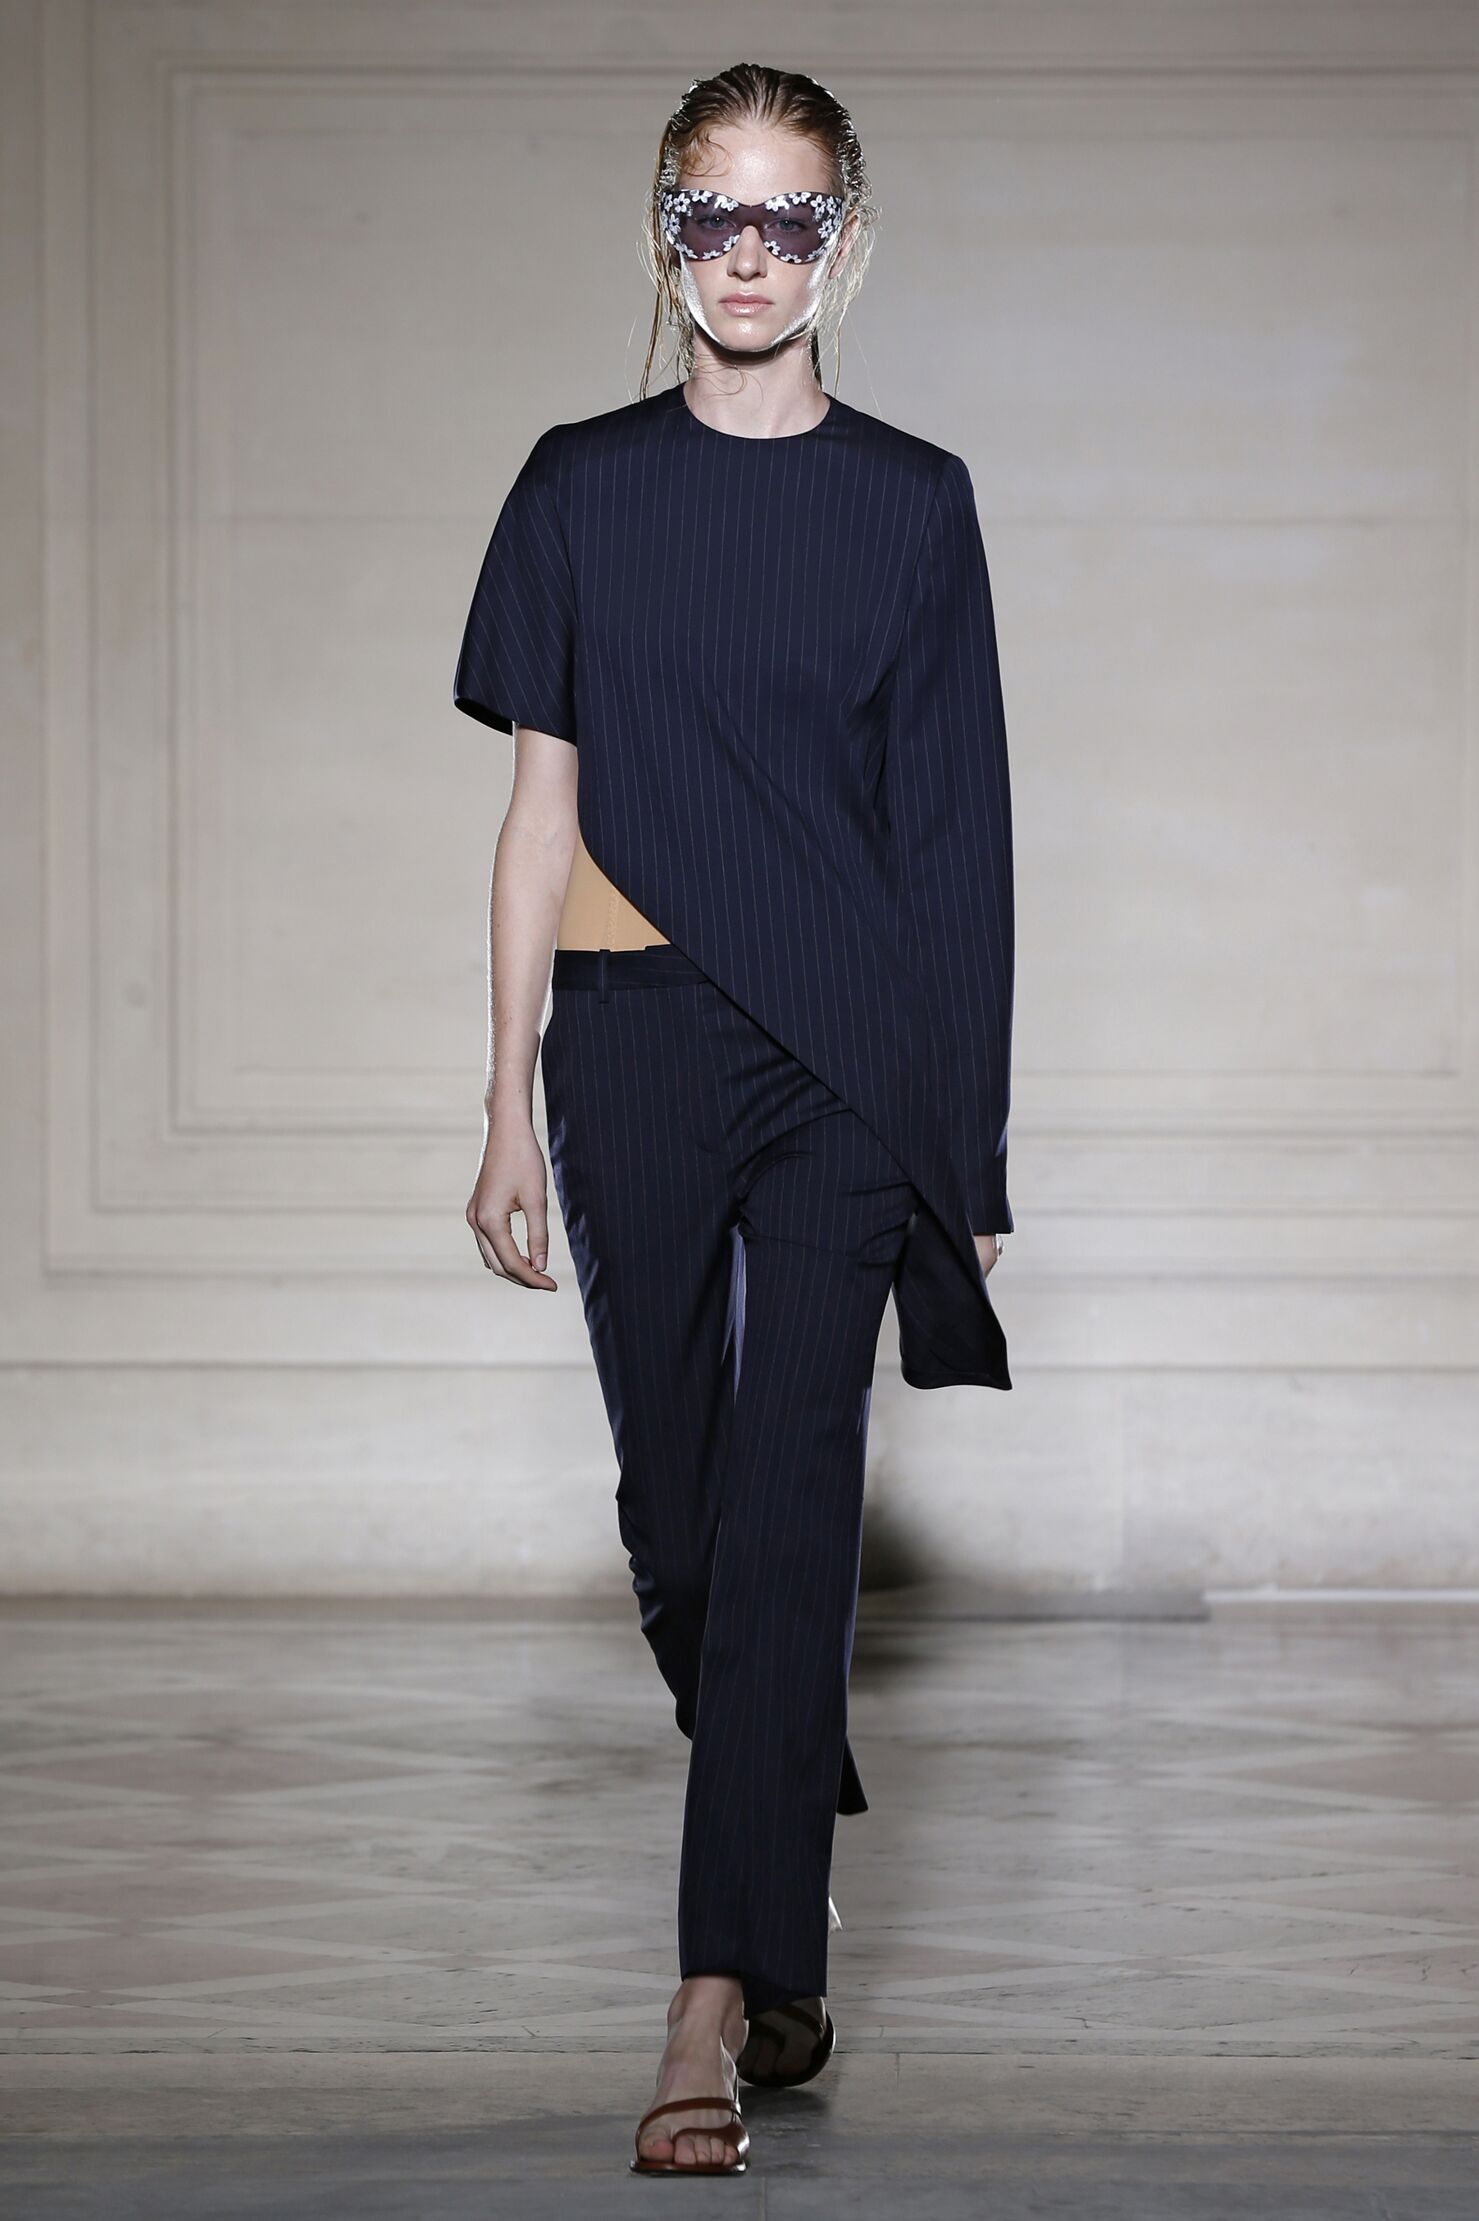 Summer 2015 Fashion Show Maison Martin Margiela